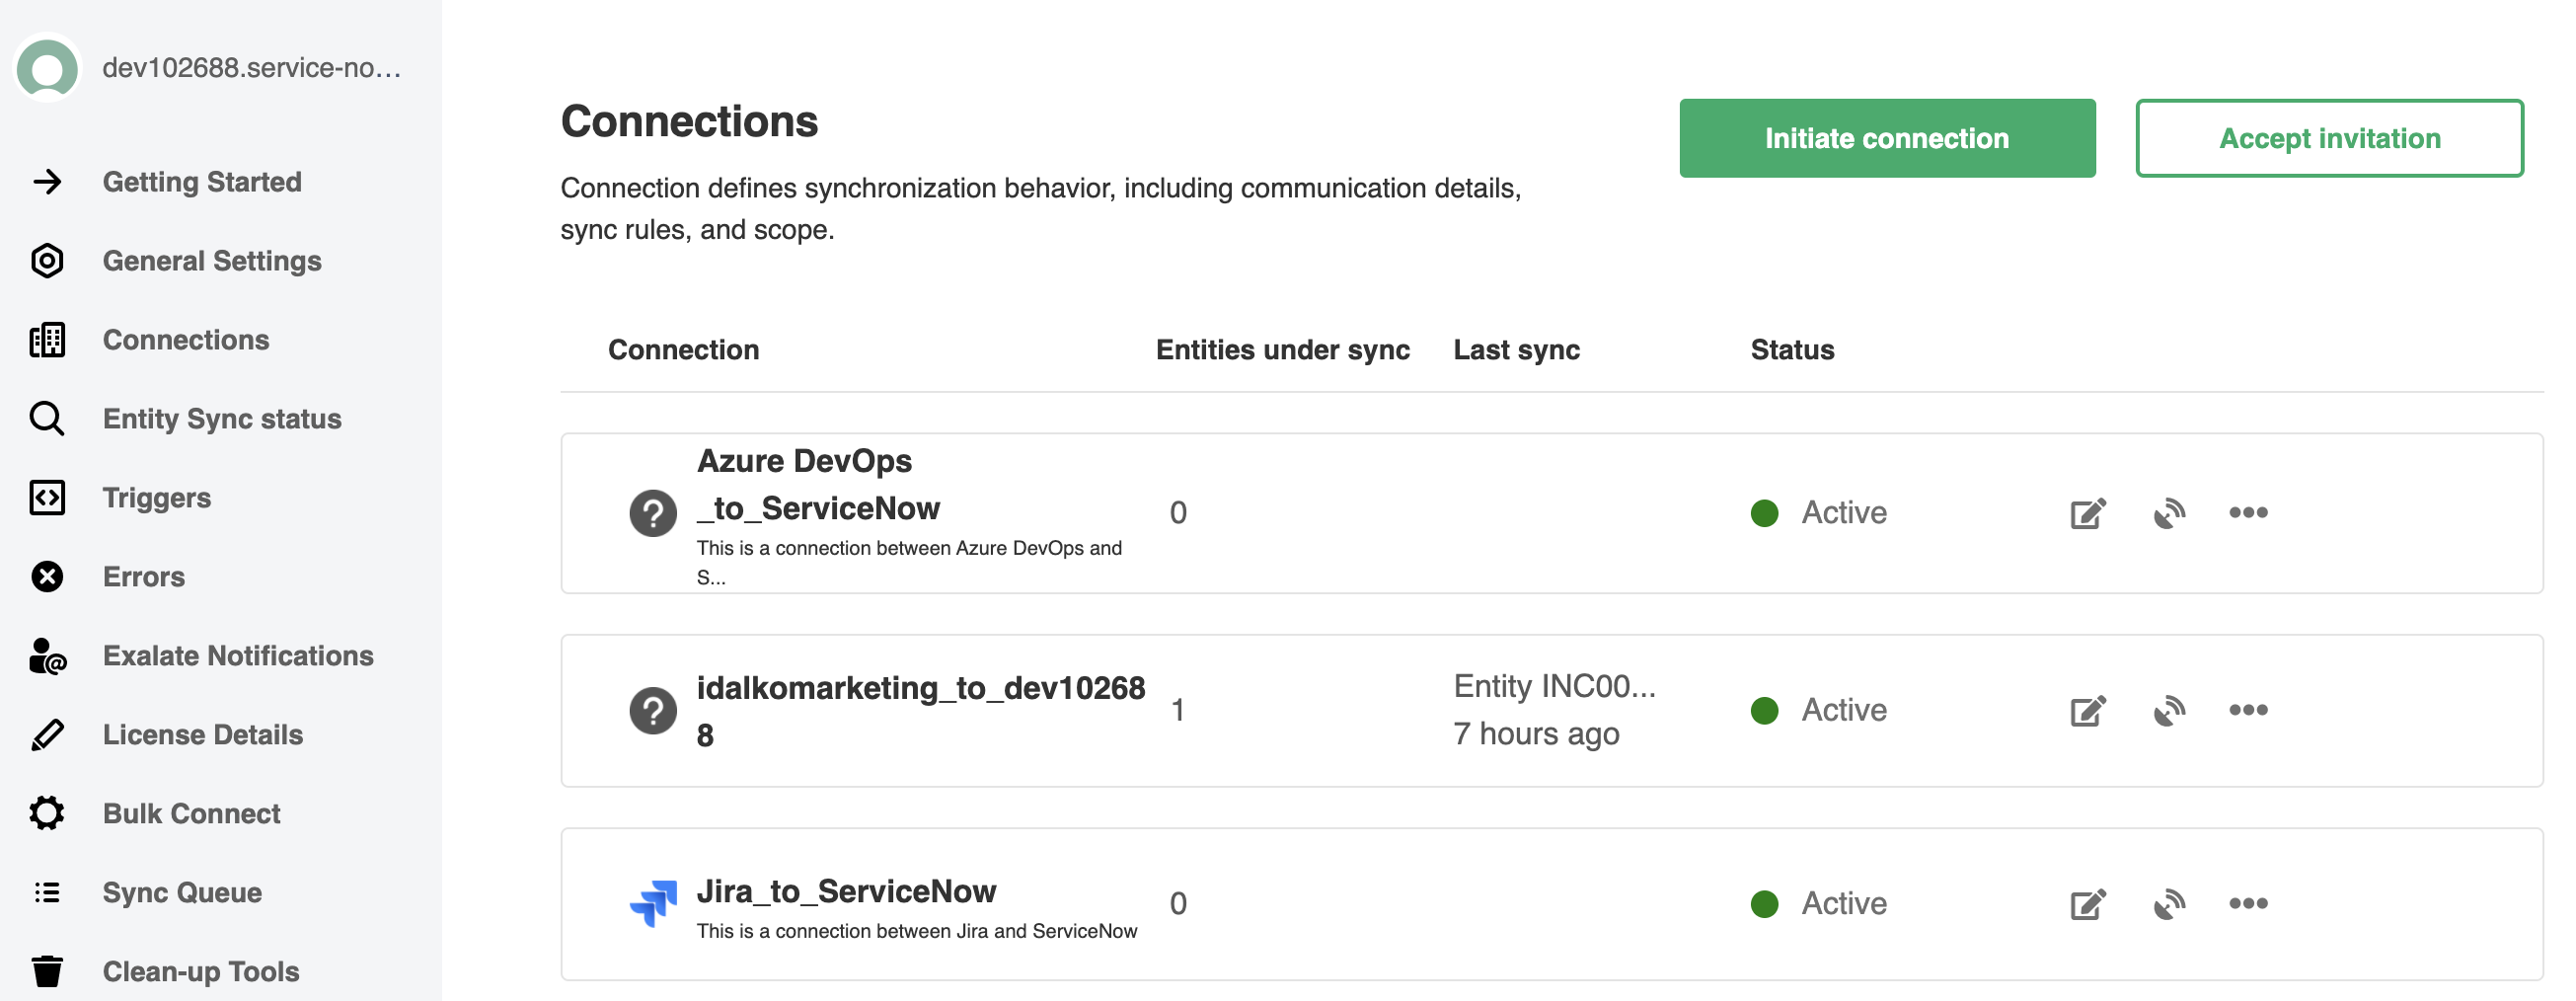 Accept invitation on the ServiceNow instance